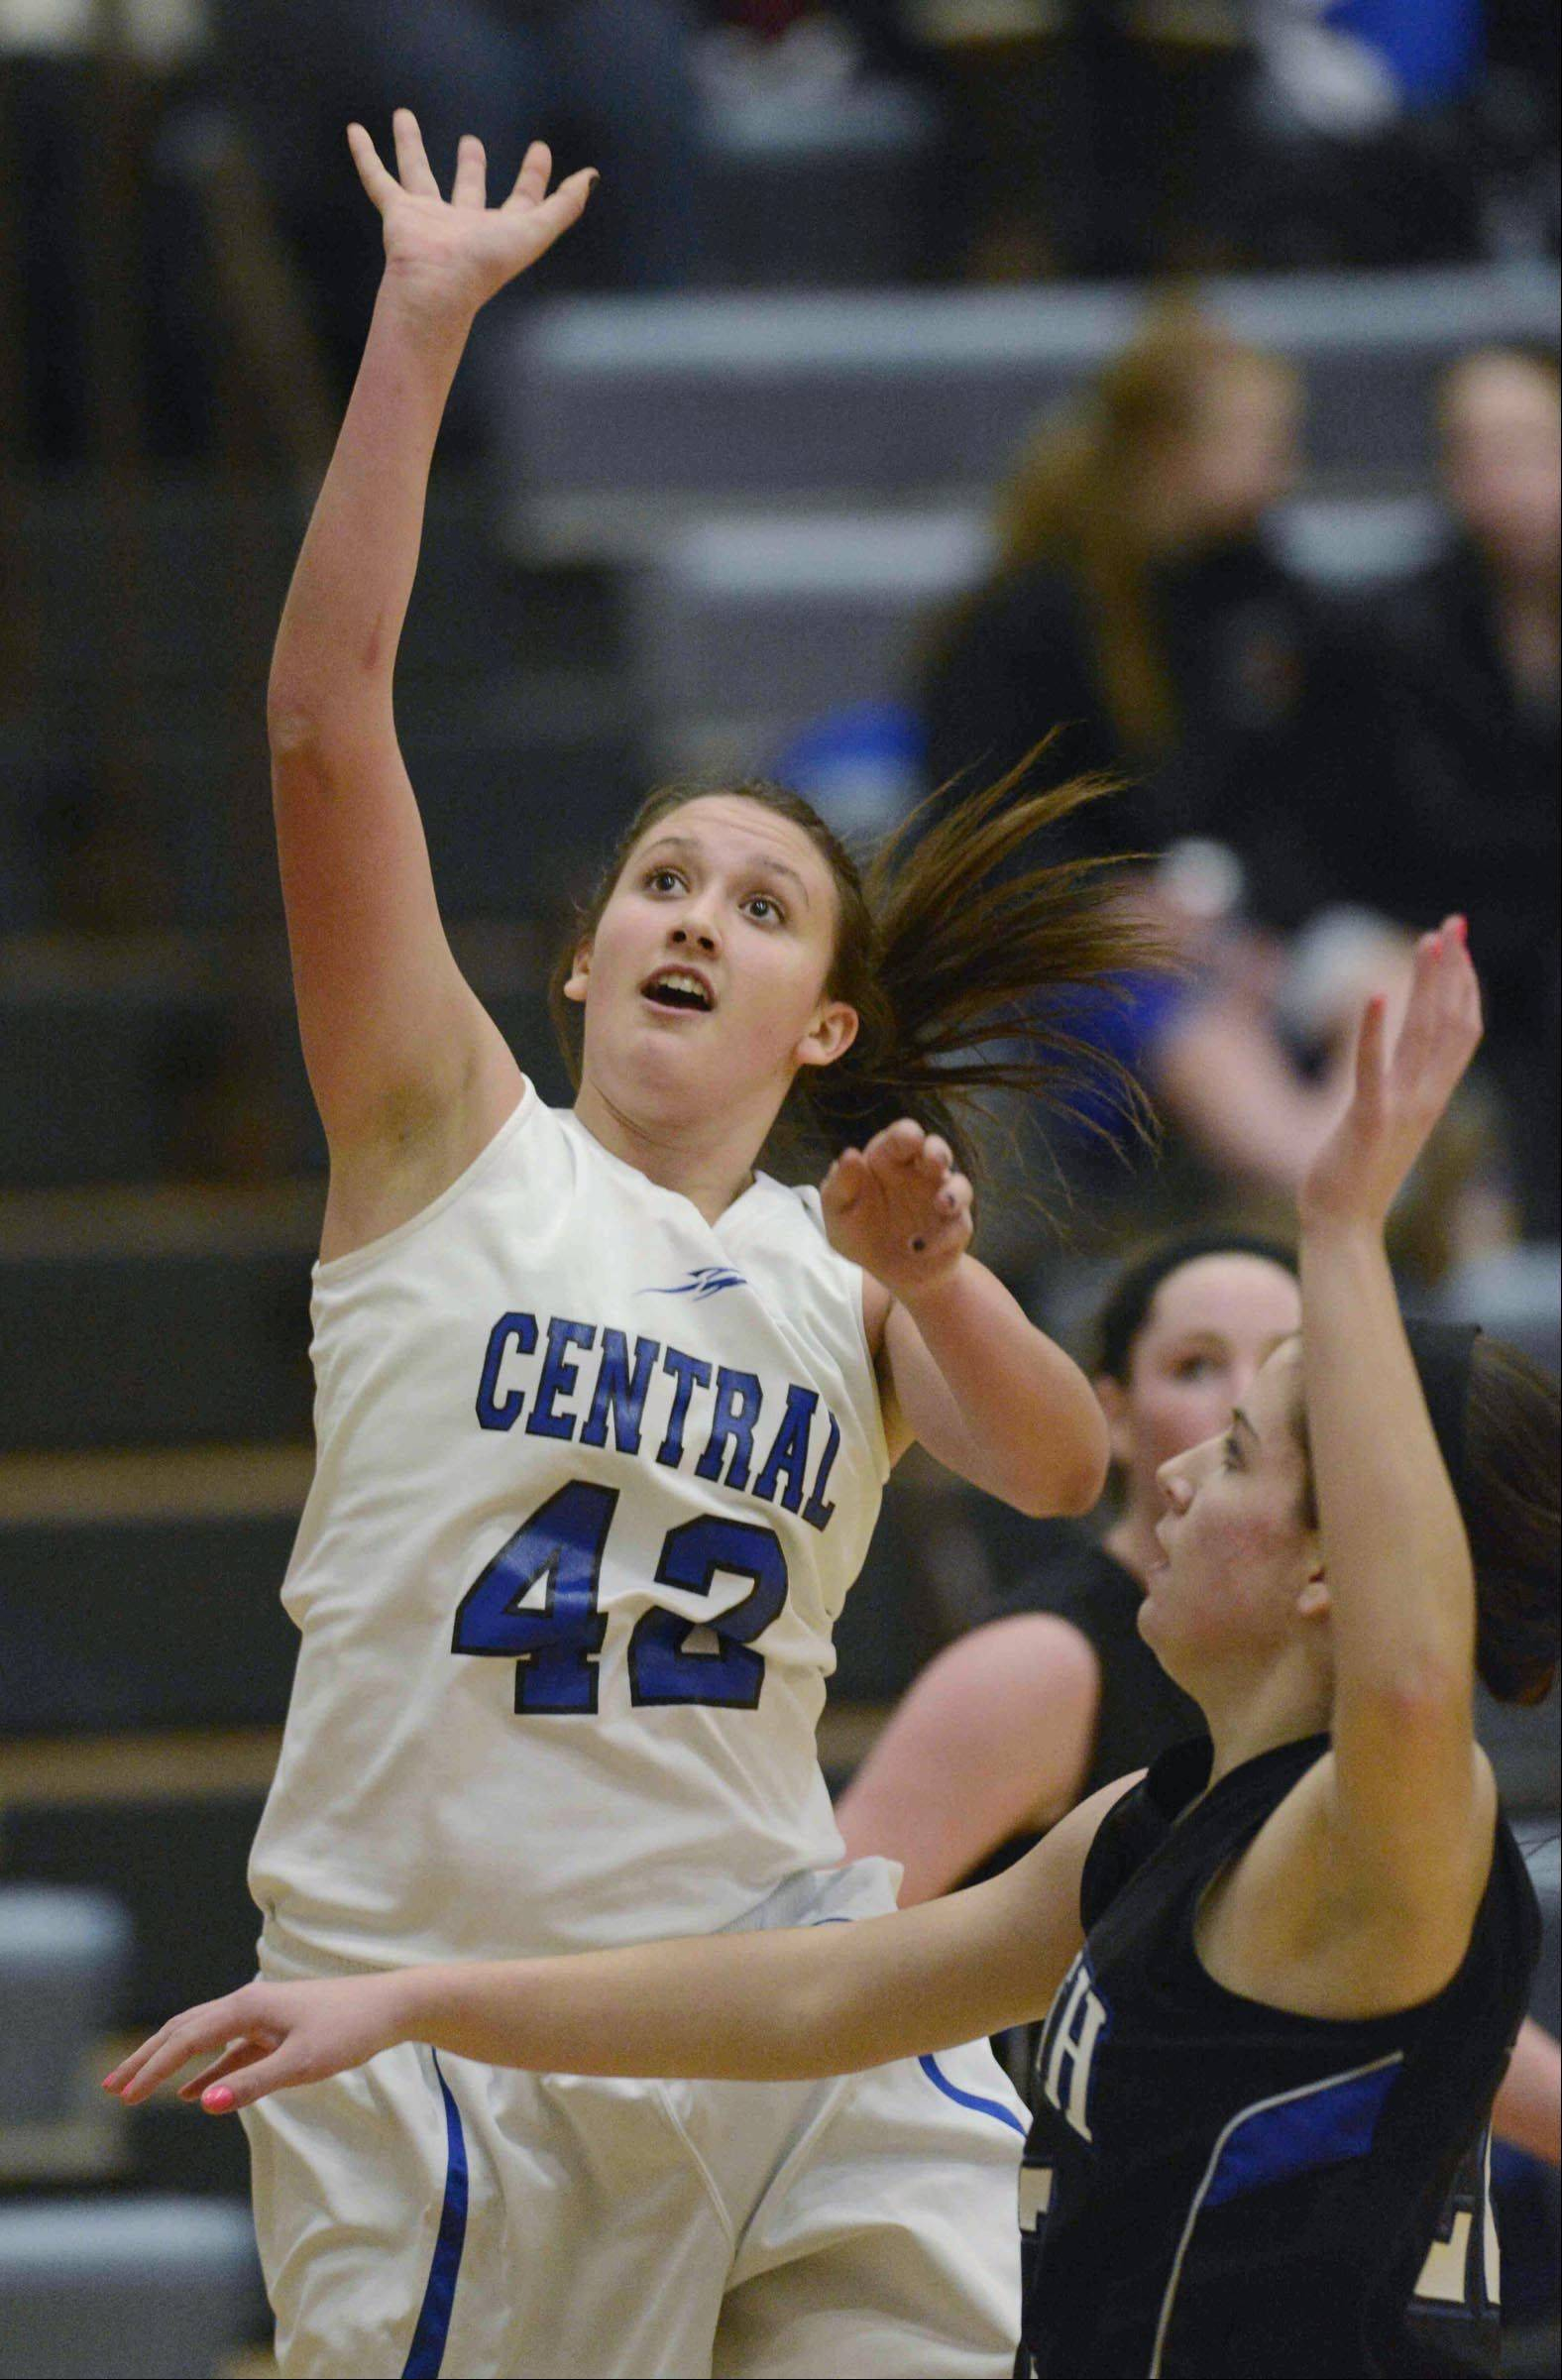 Burlington Central sophomore Alison Colby (42) puts up a shot against Hampshire in regional play this season. The Rockets, coming off a 27-5 season that ended with a supersectional loss to eventual Class 3A state runner-up Vernon Hills, have accepted an invitation to play in the prestigious Charger Classic Christmas Tournament at Dundee-Crown next season.